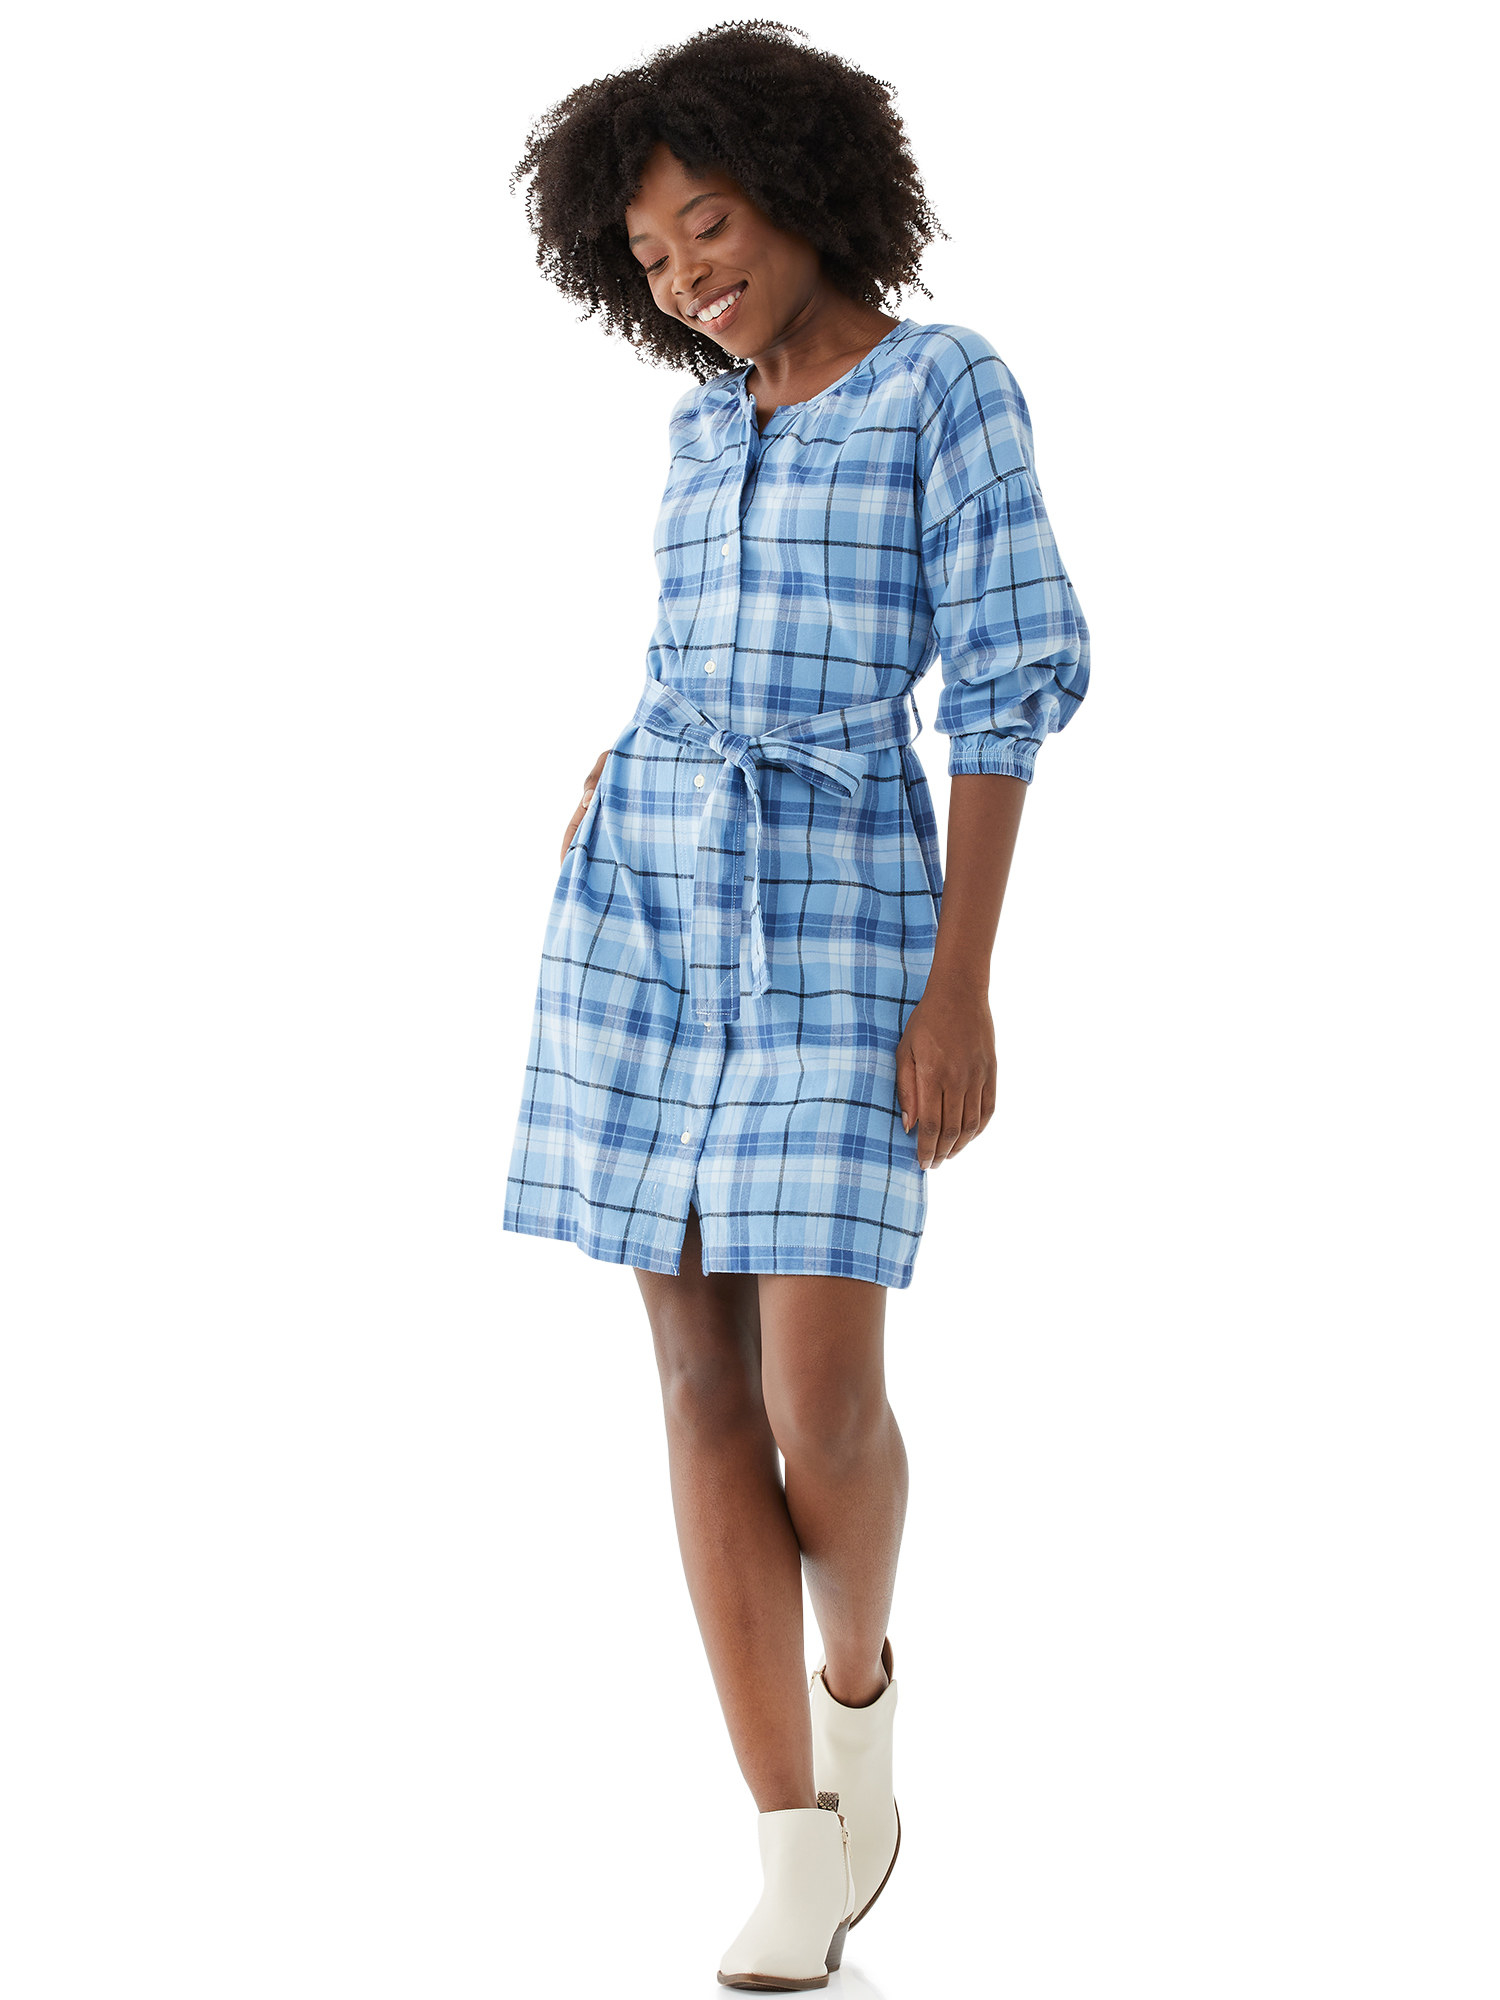 Model wearing white booties and a blue plaid dress